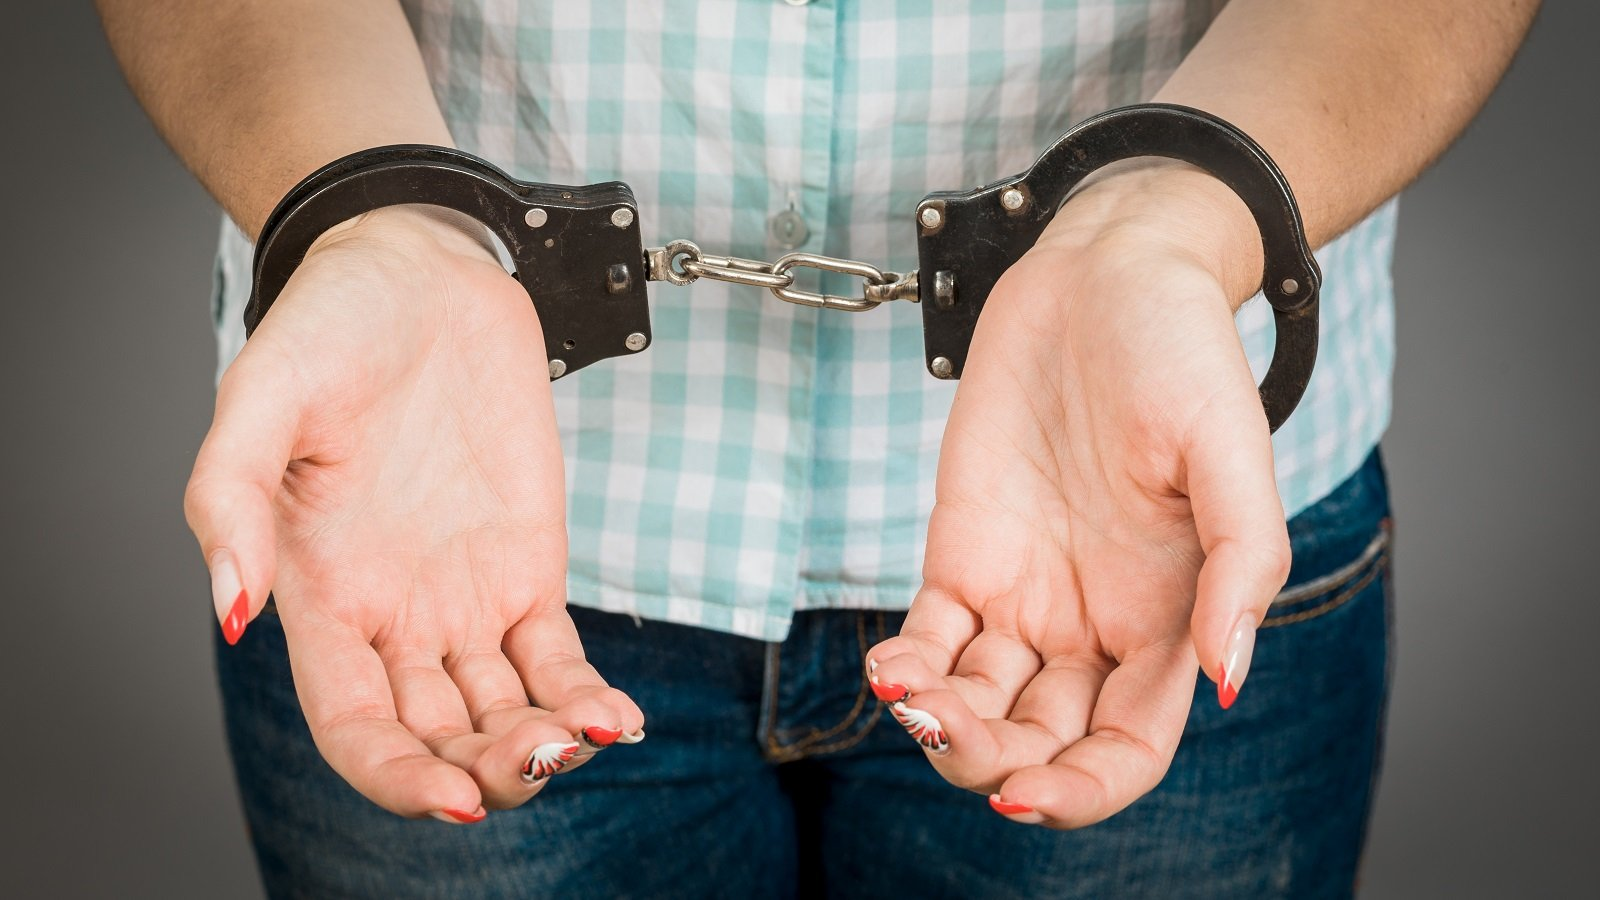 A woman in handcuffs. | Photo: Shutterstock.